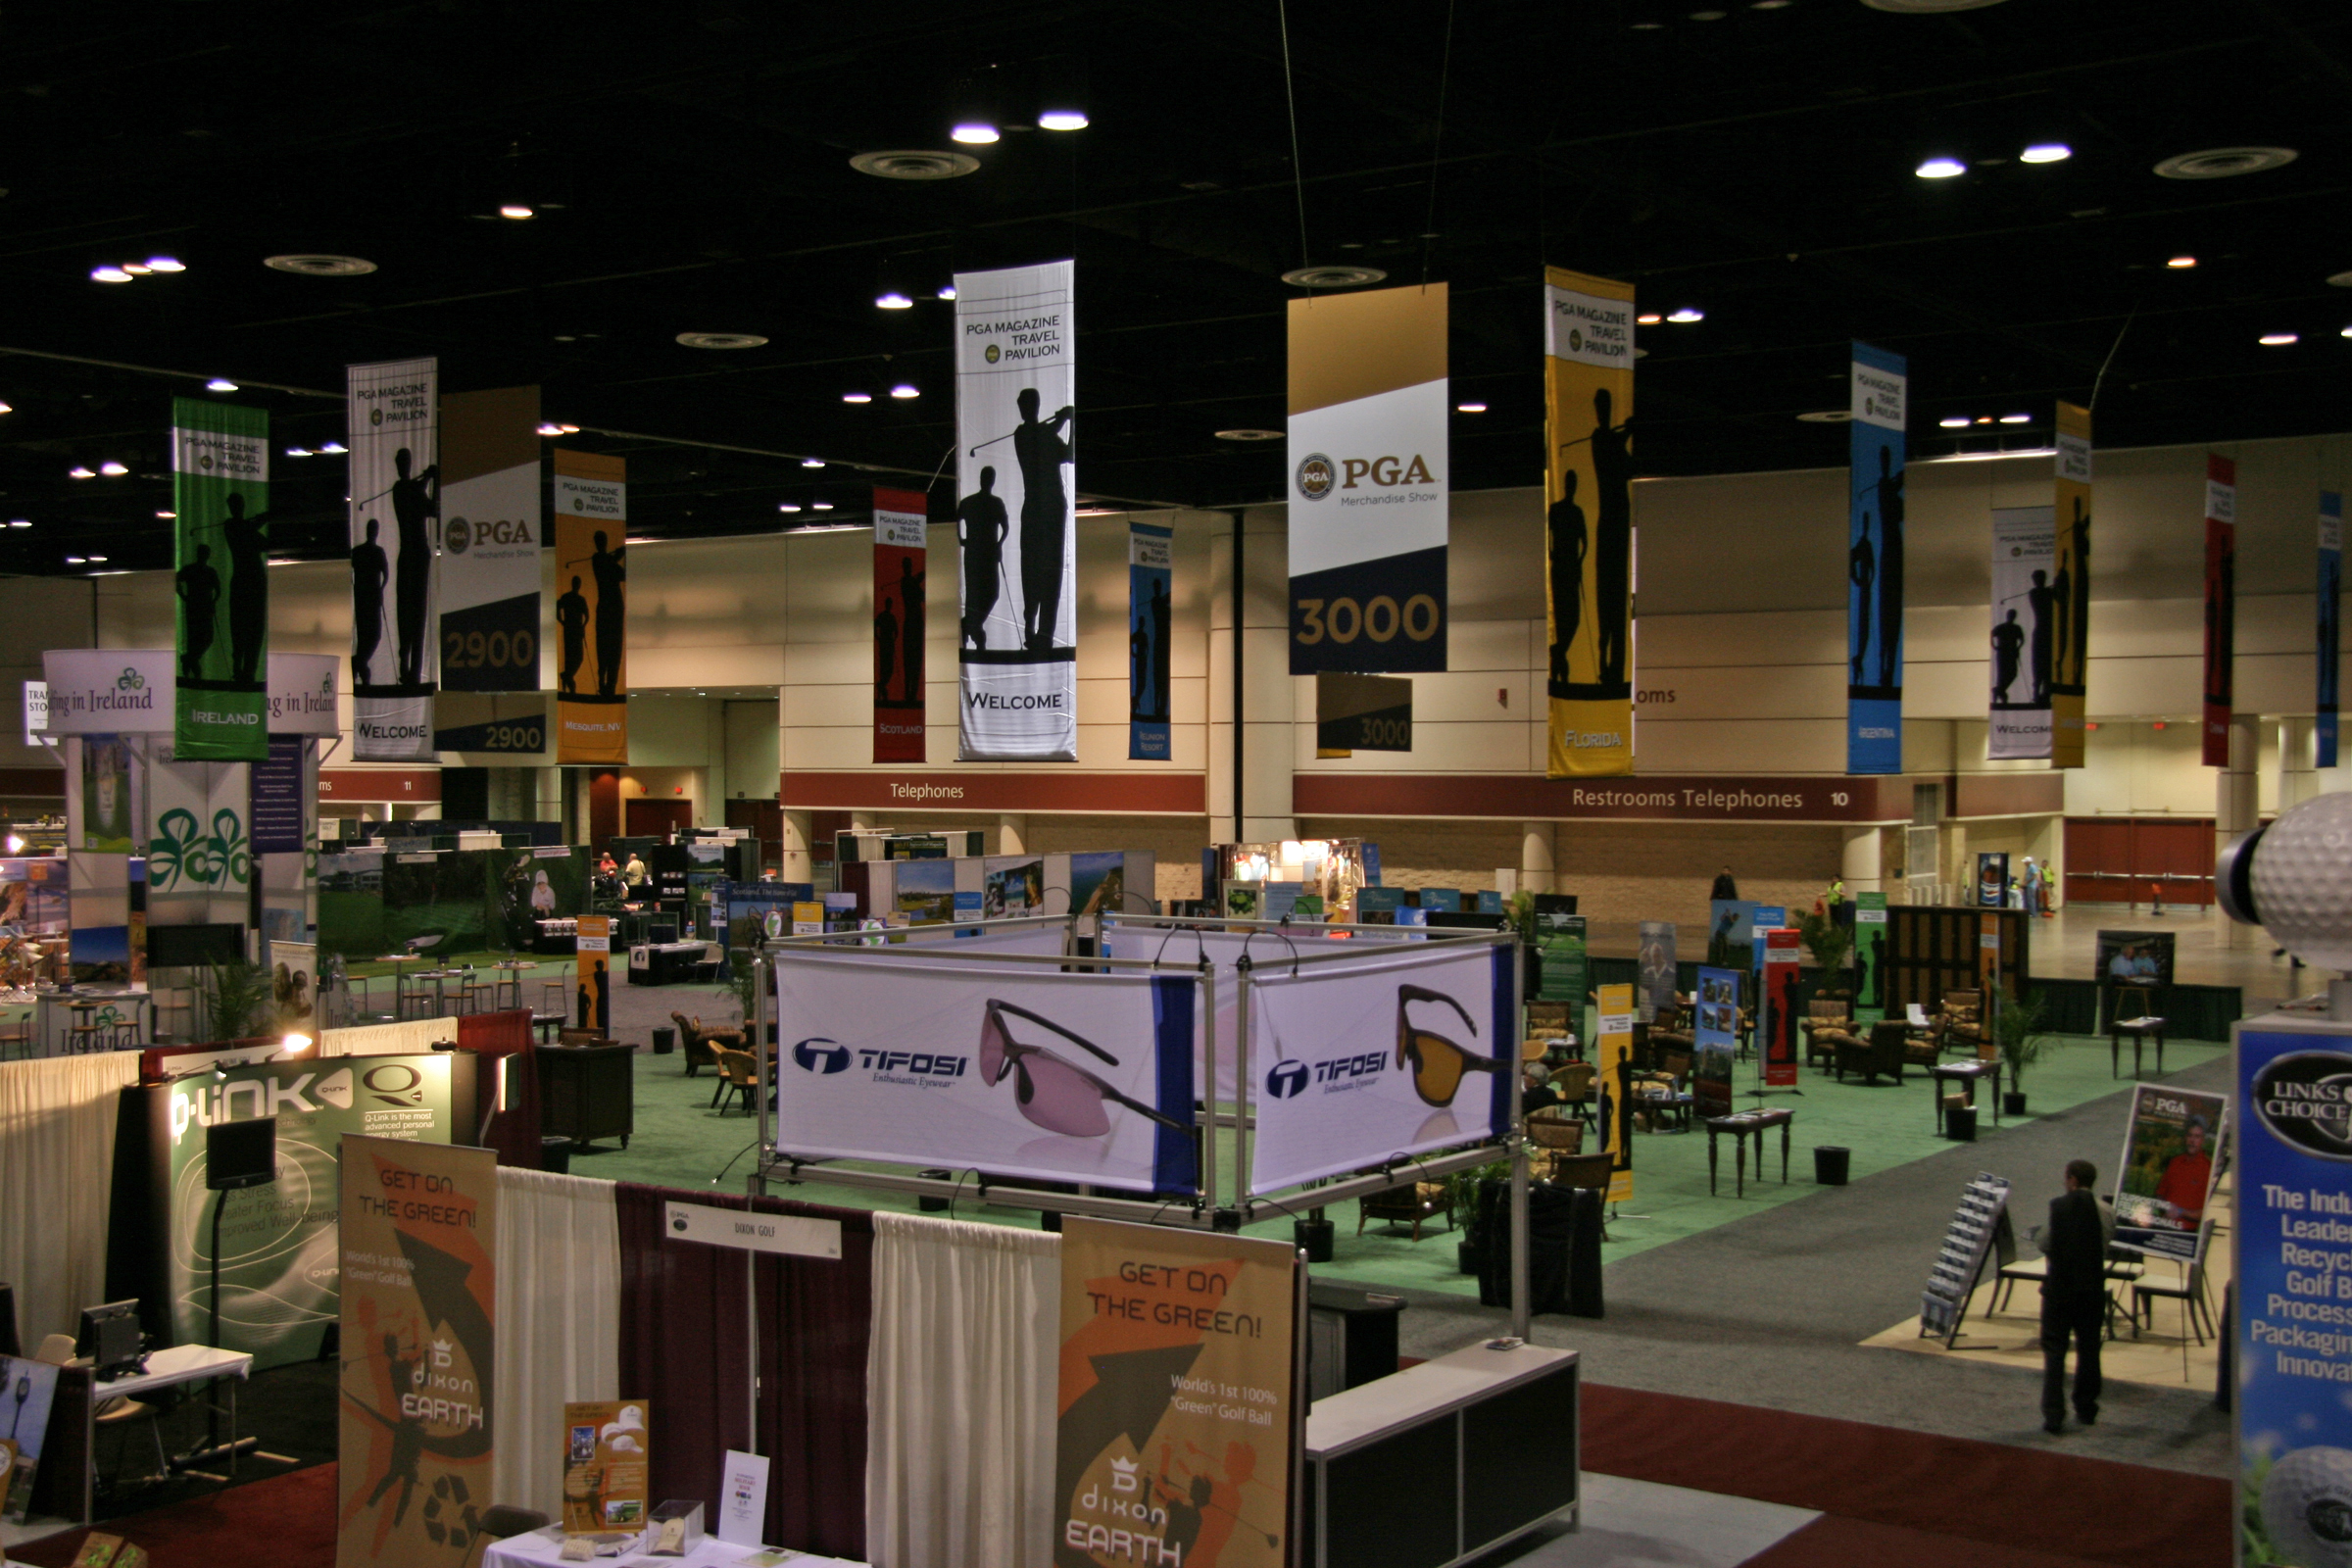 Demo Day at the PGA Merchandise Show, 2009.